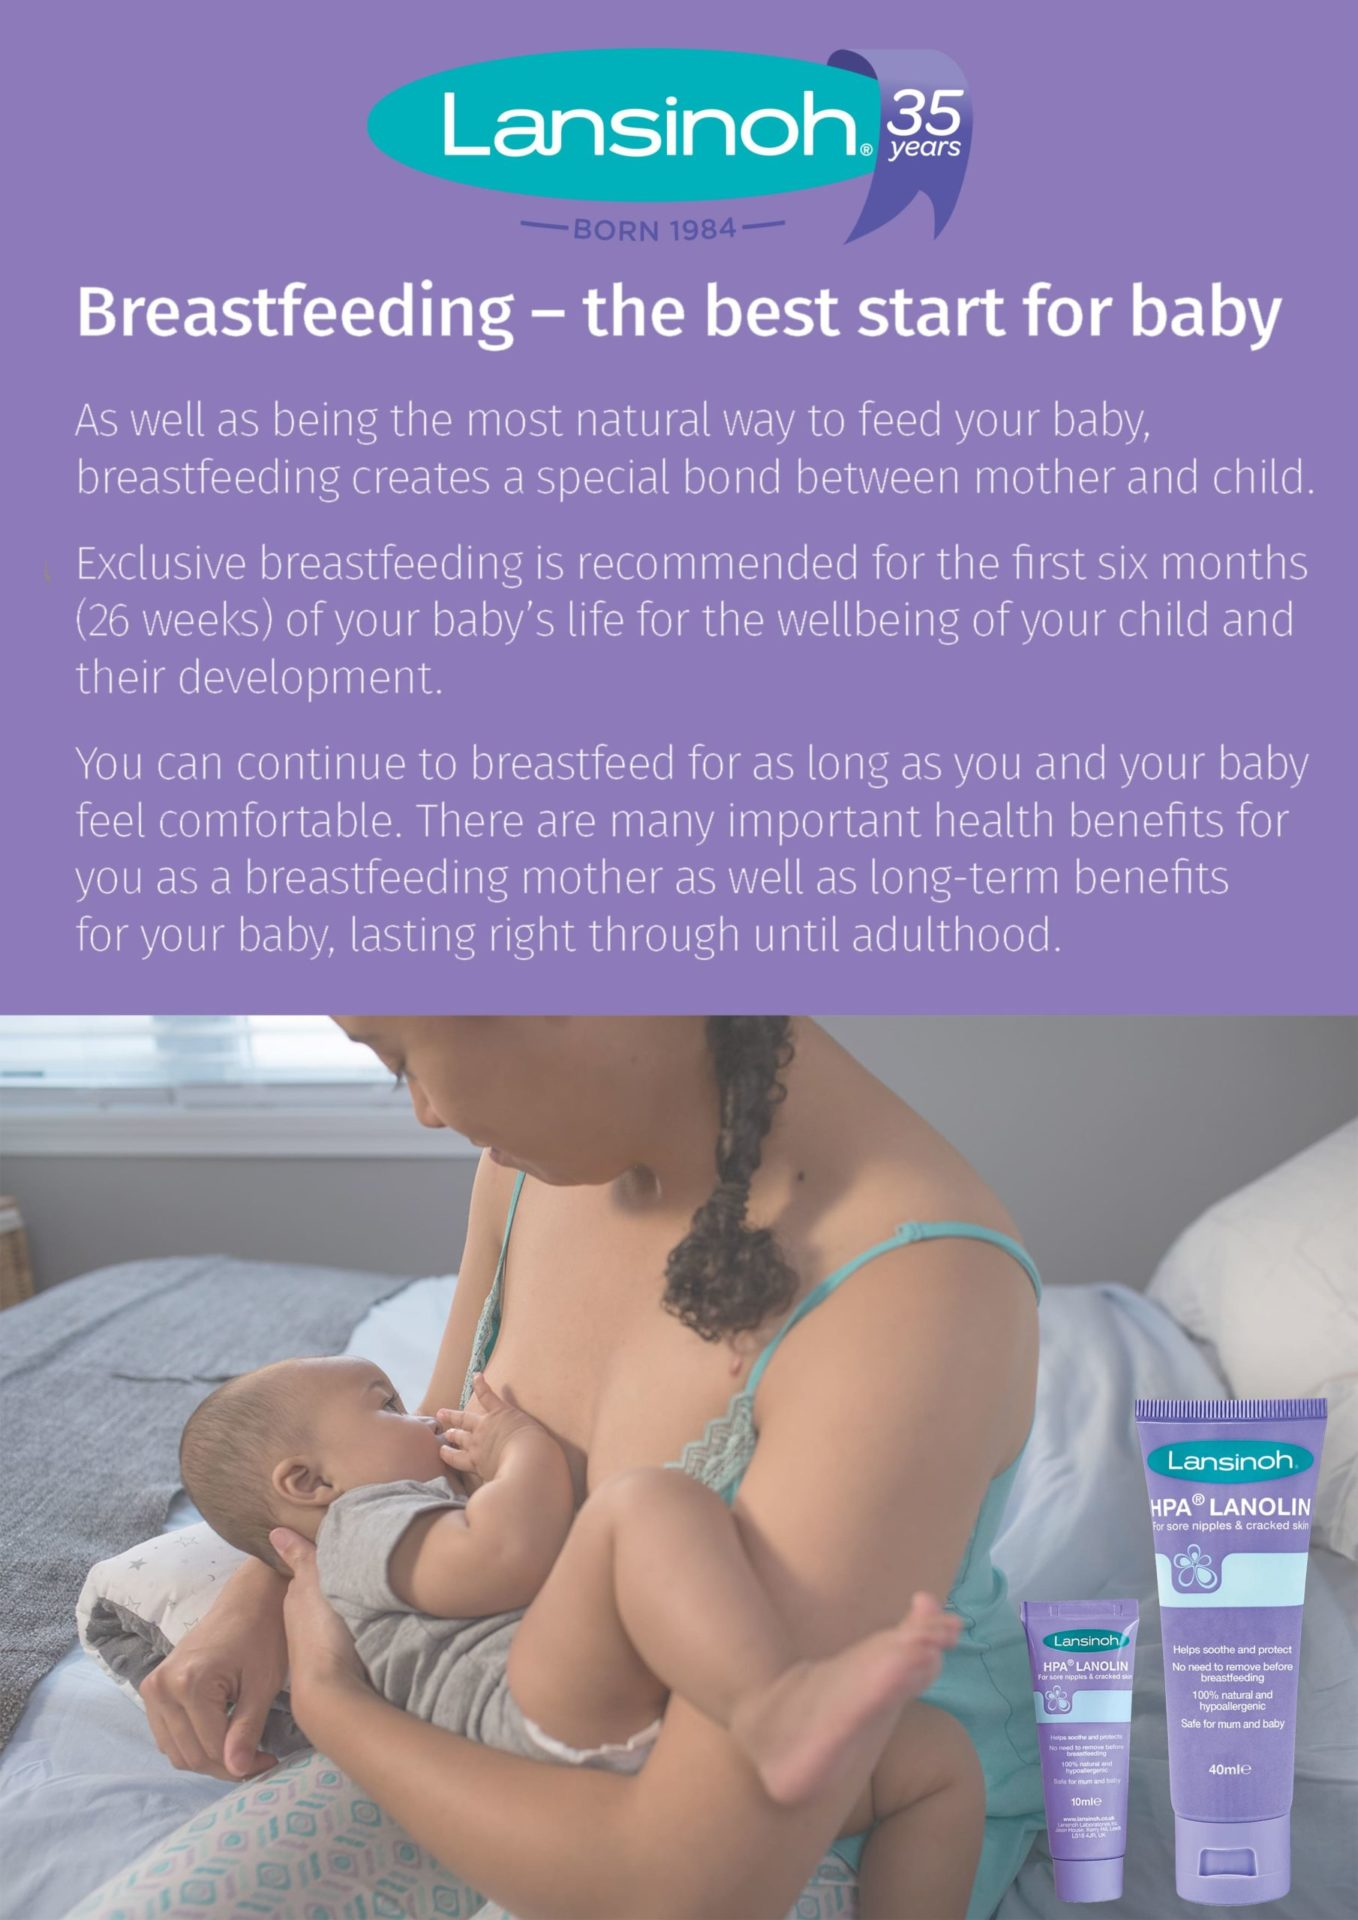 Poster of breastfeeding from Lansinoh